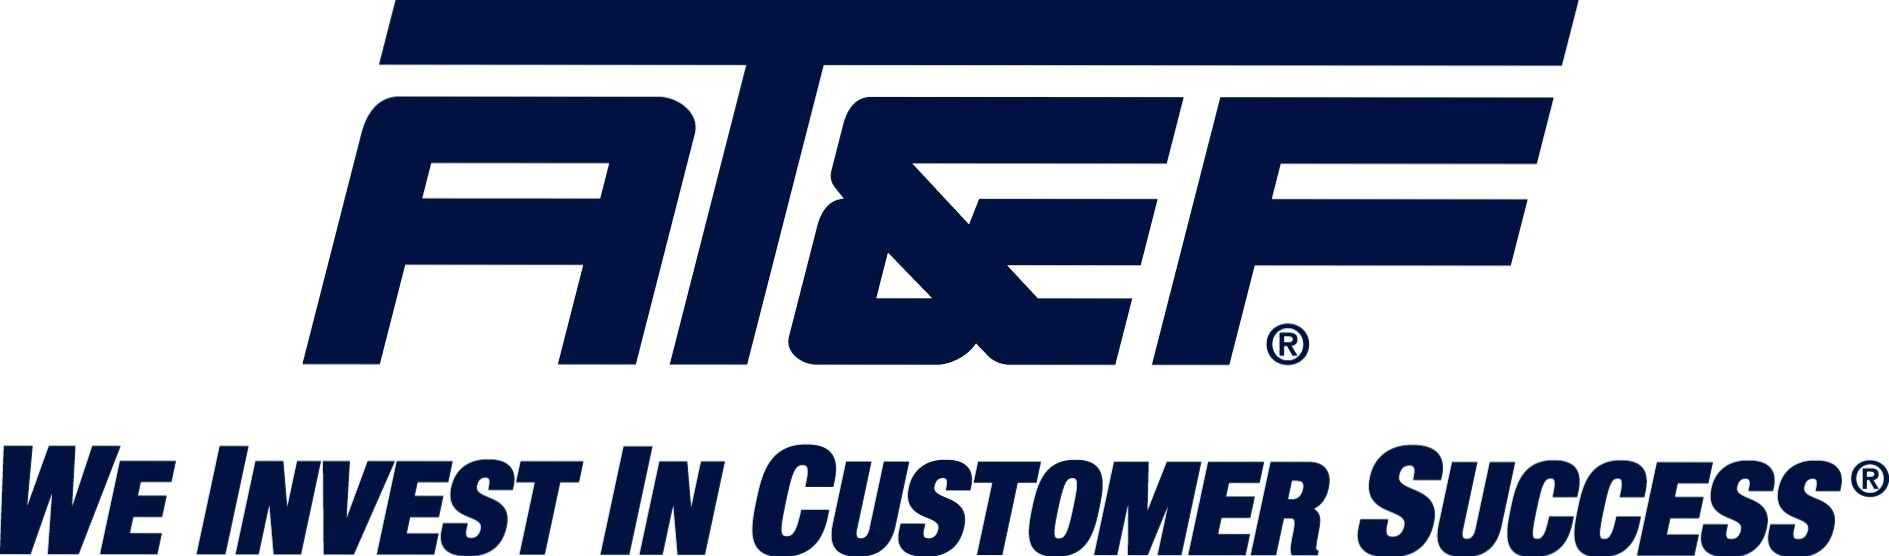 AT&F-we-invest-in-customer-success-logo.png